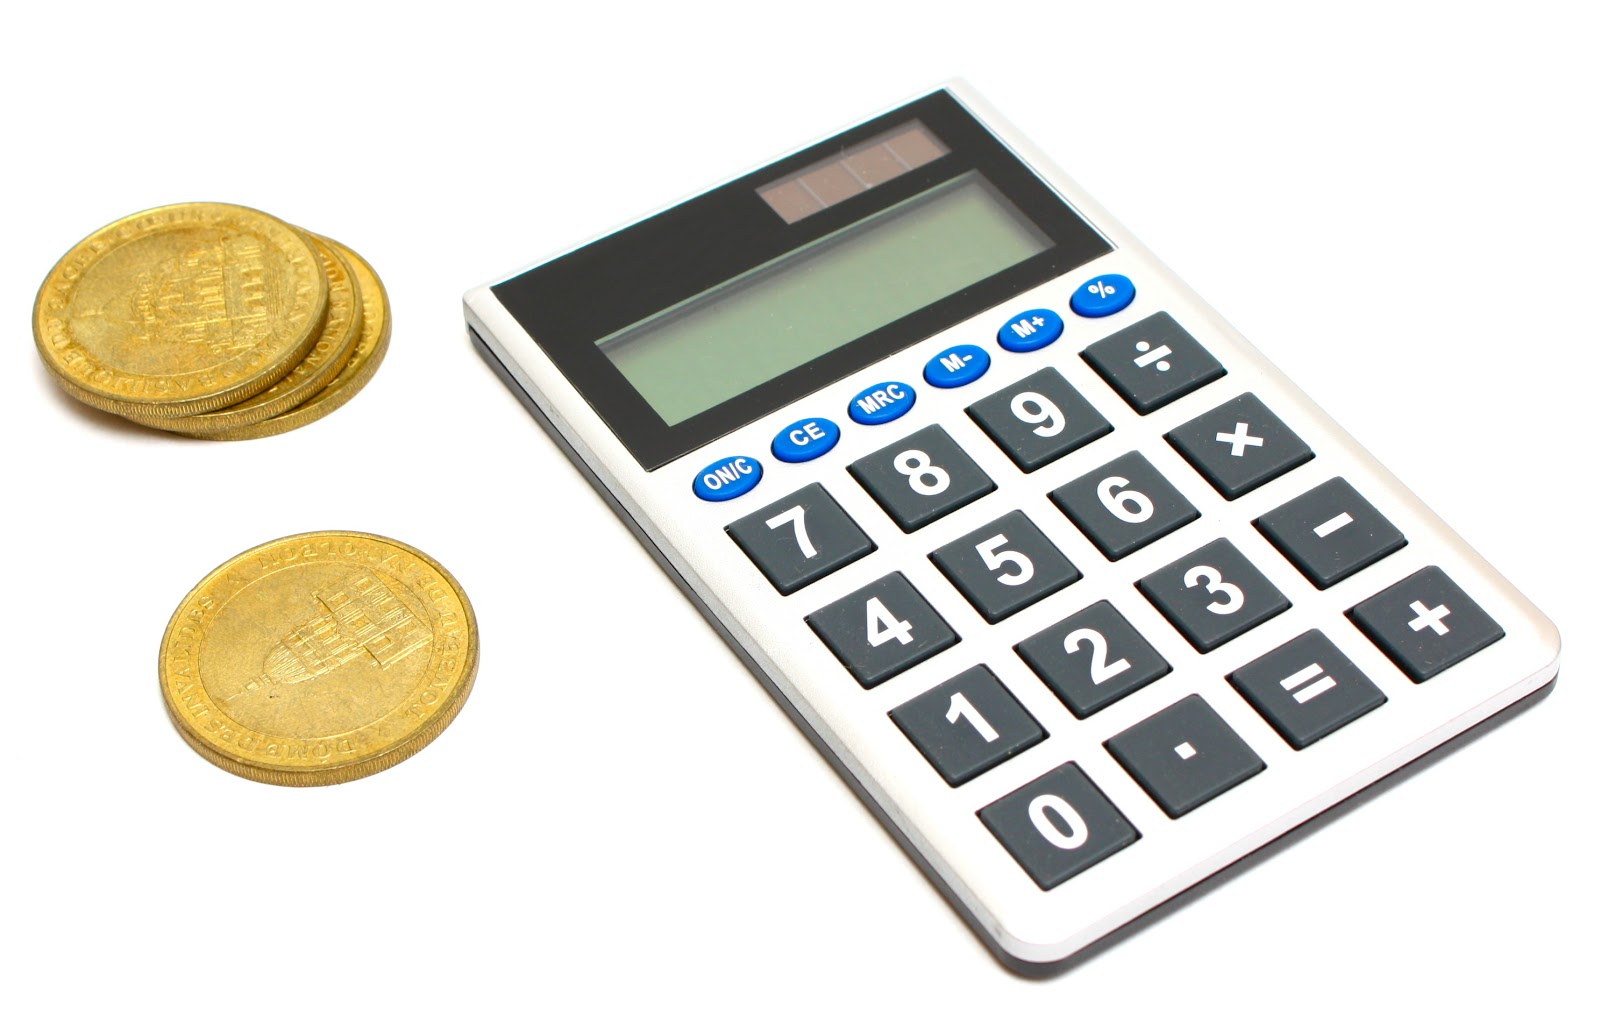 Basic Online Calculator With Decimal Point